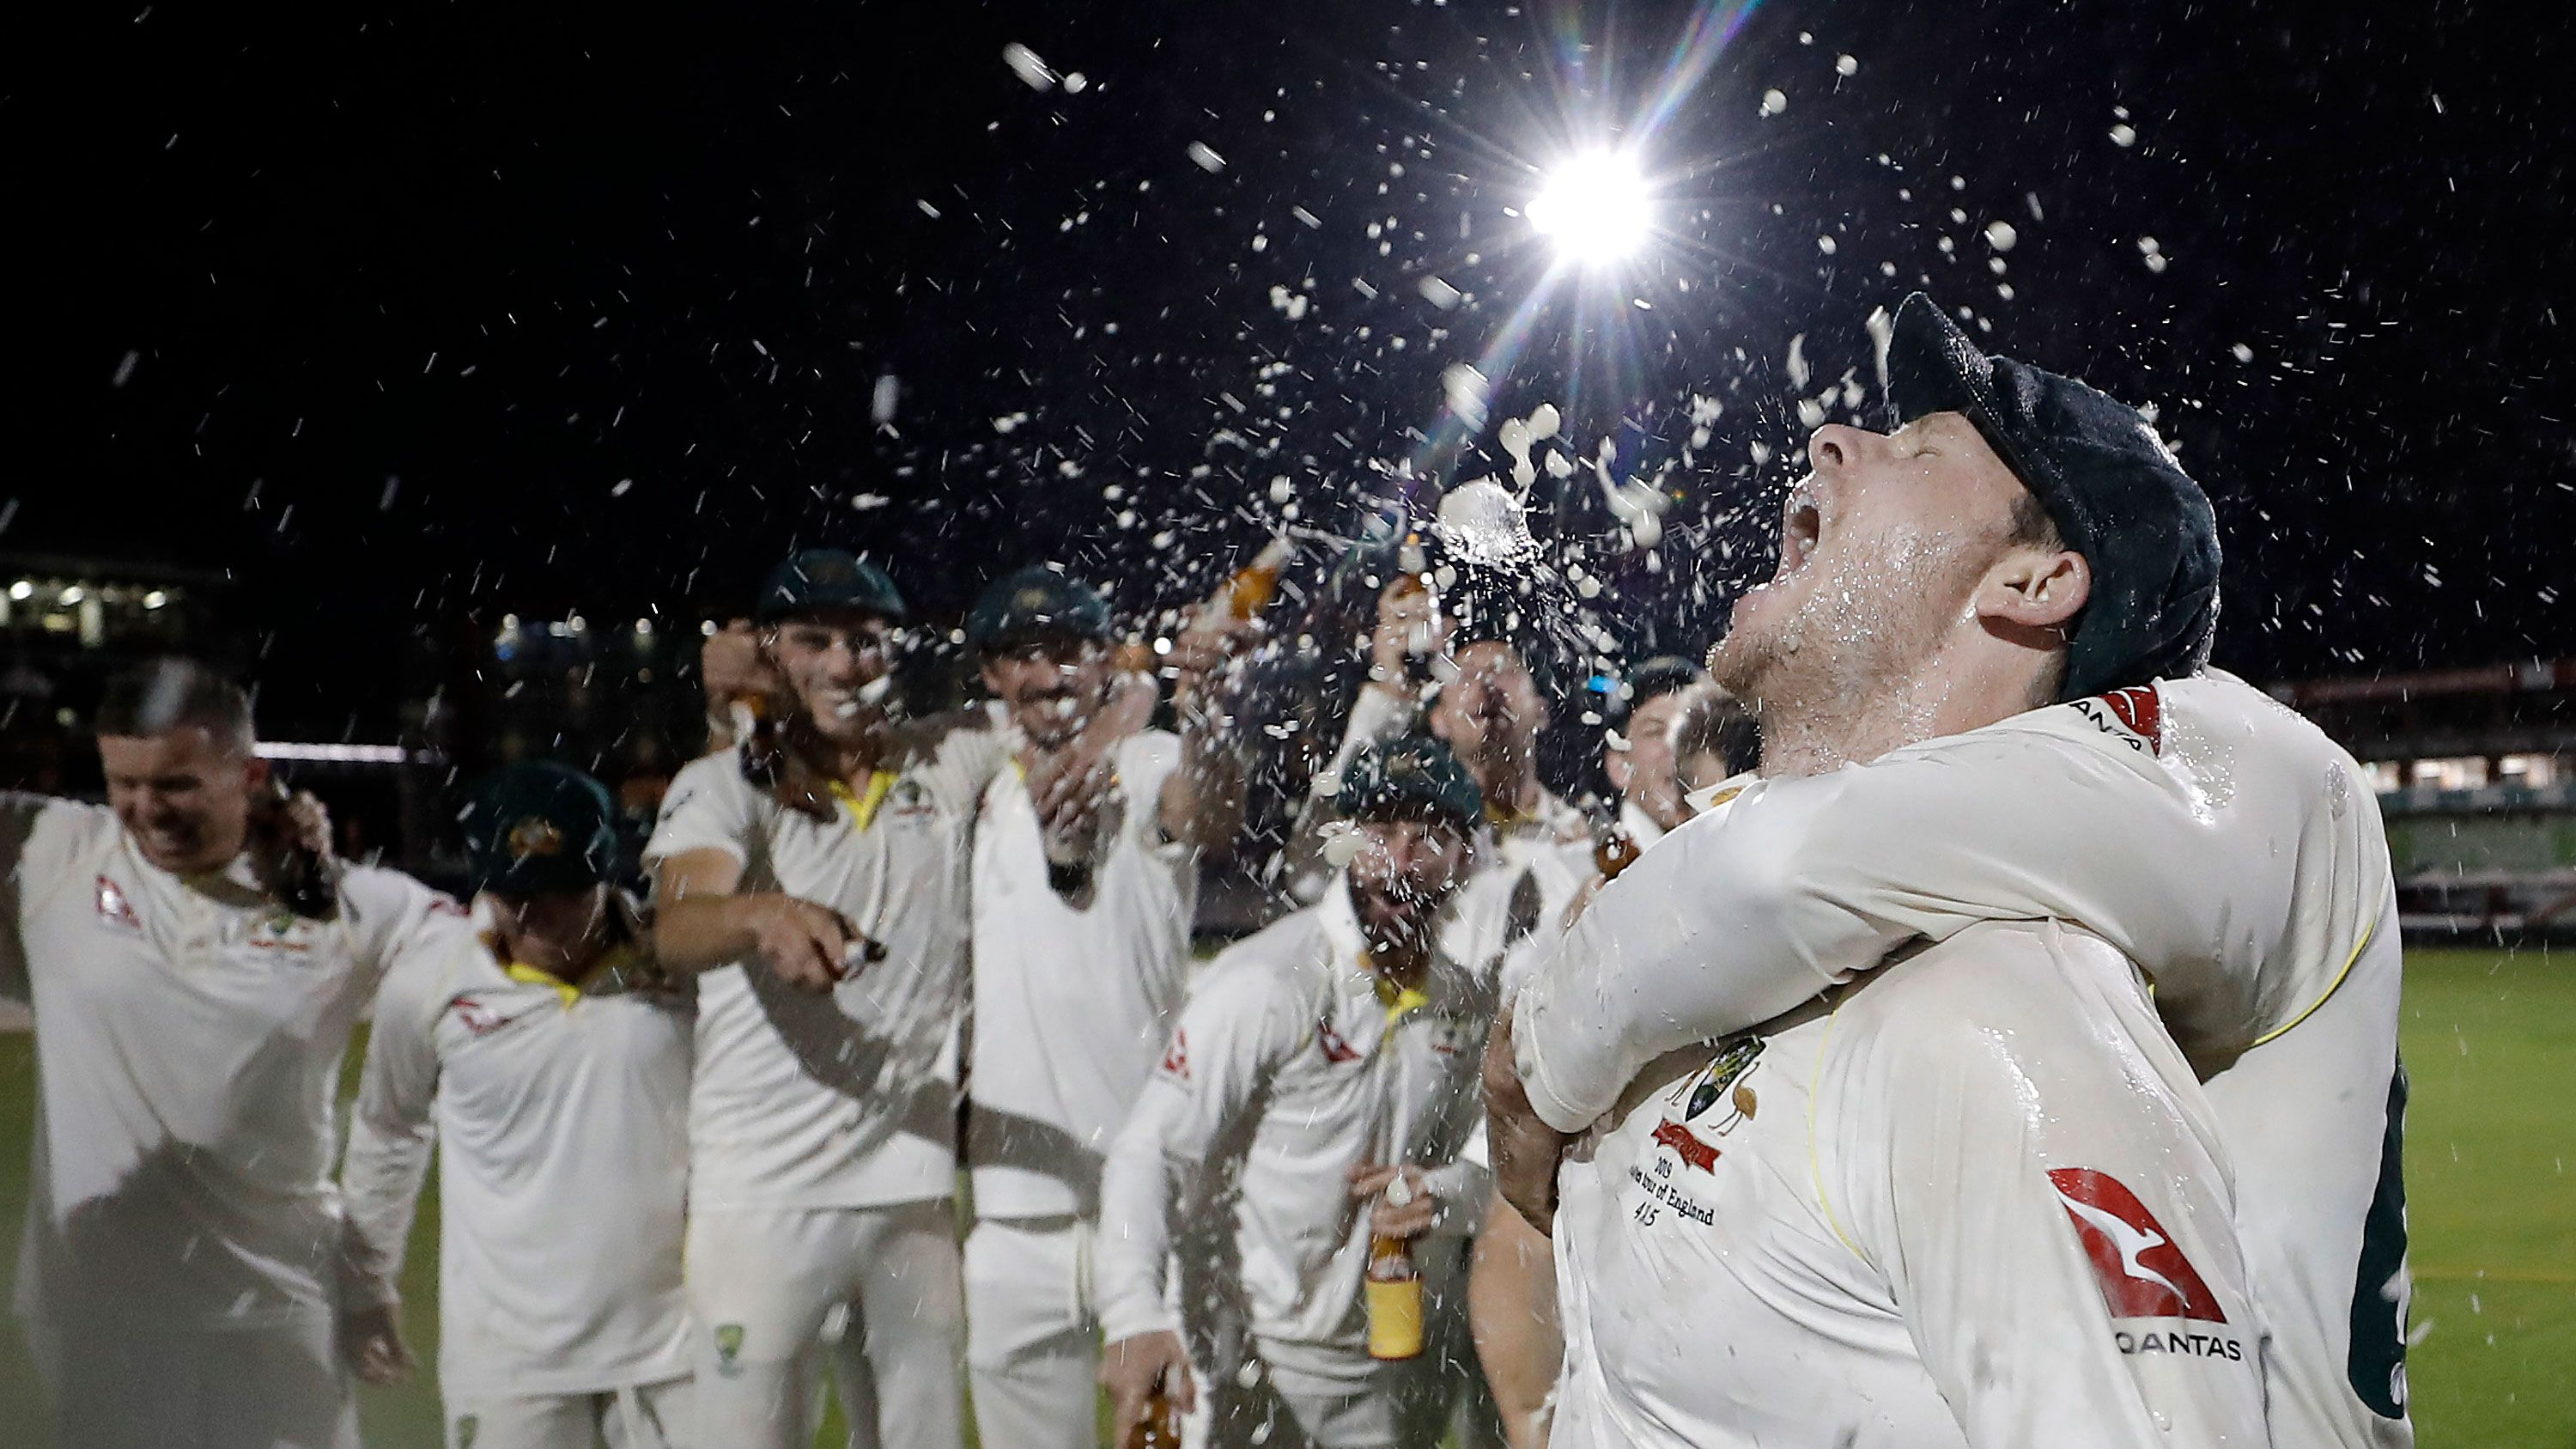 Pictures: How Australia celebrated fourth Test Ashes victory against England